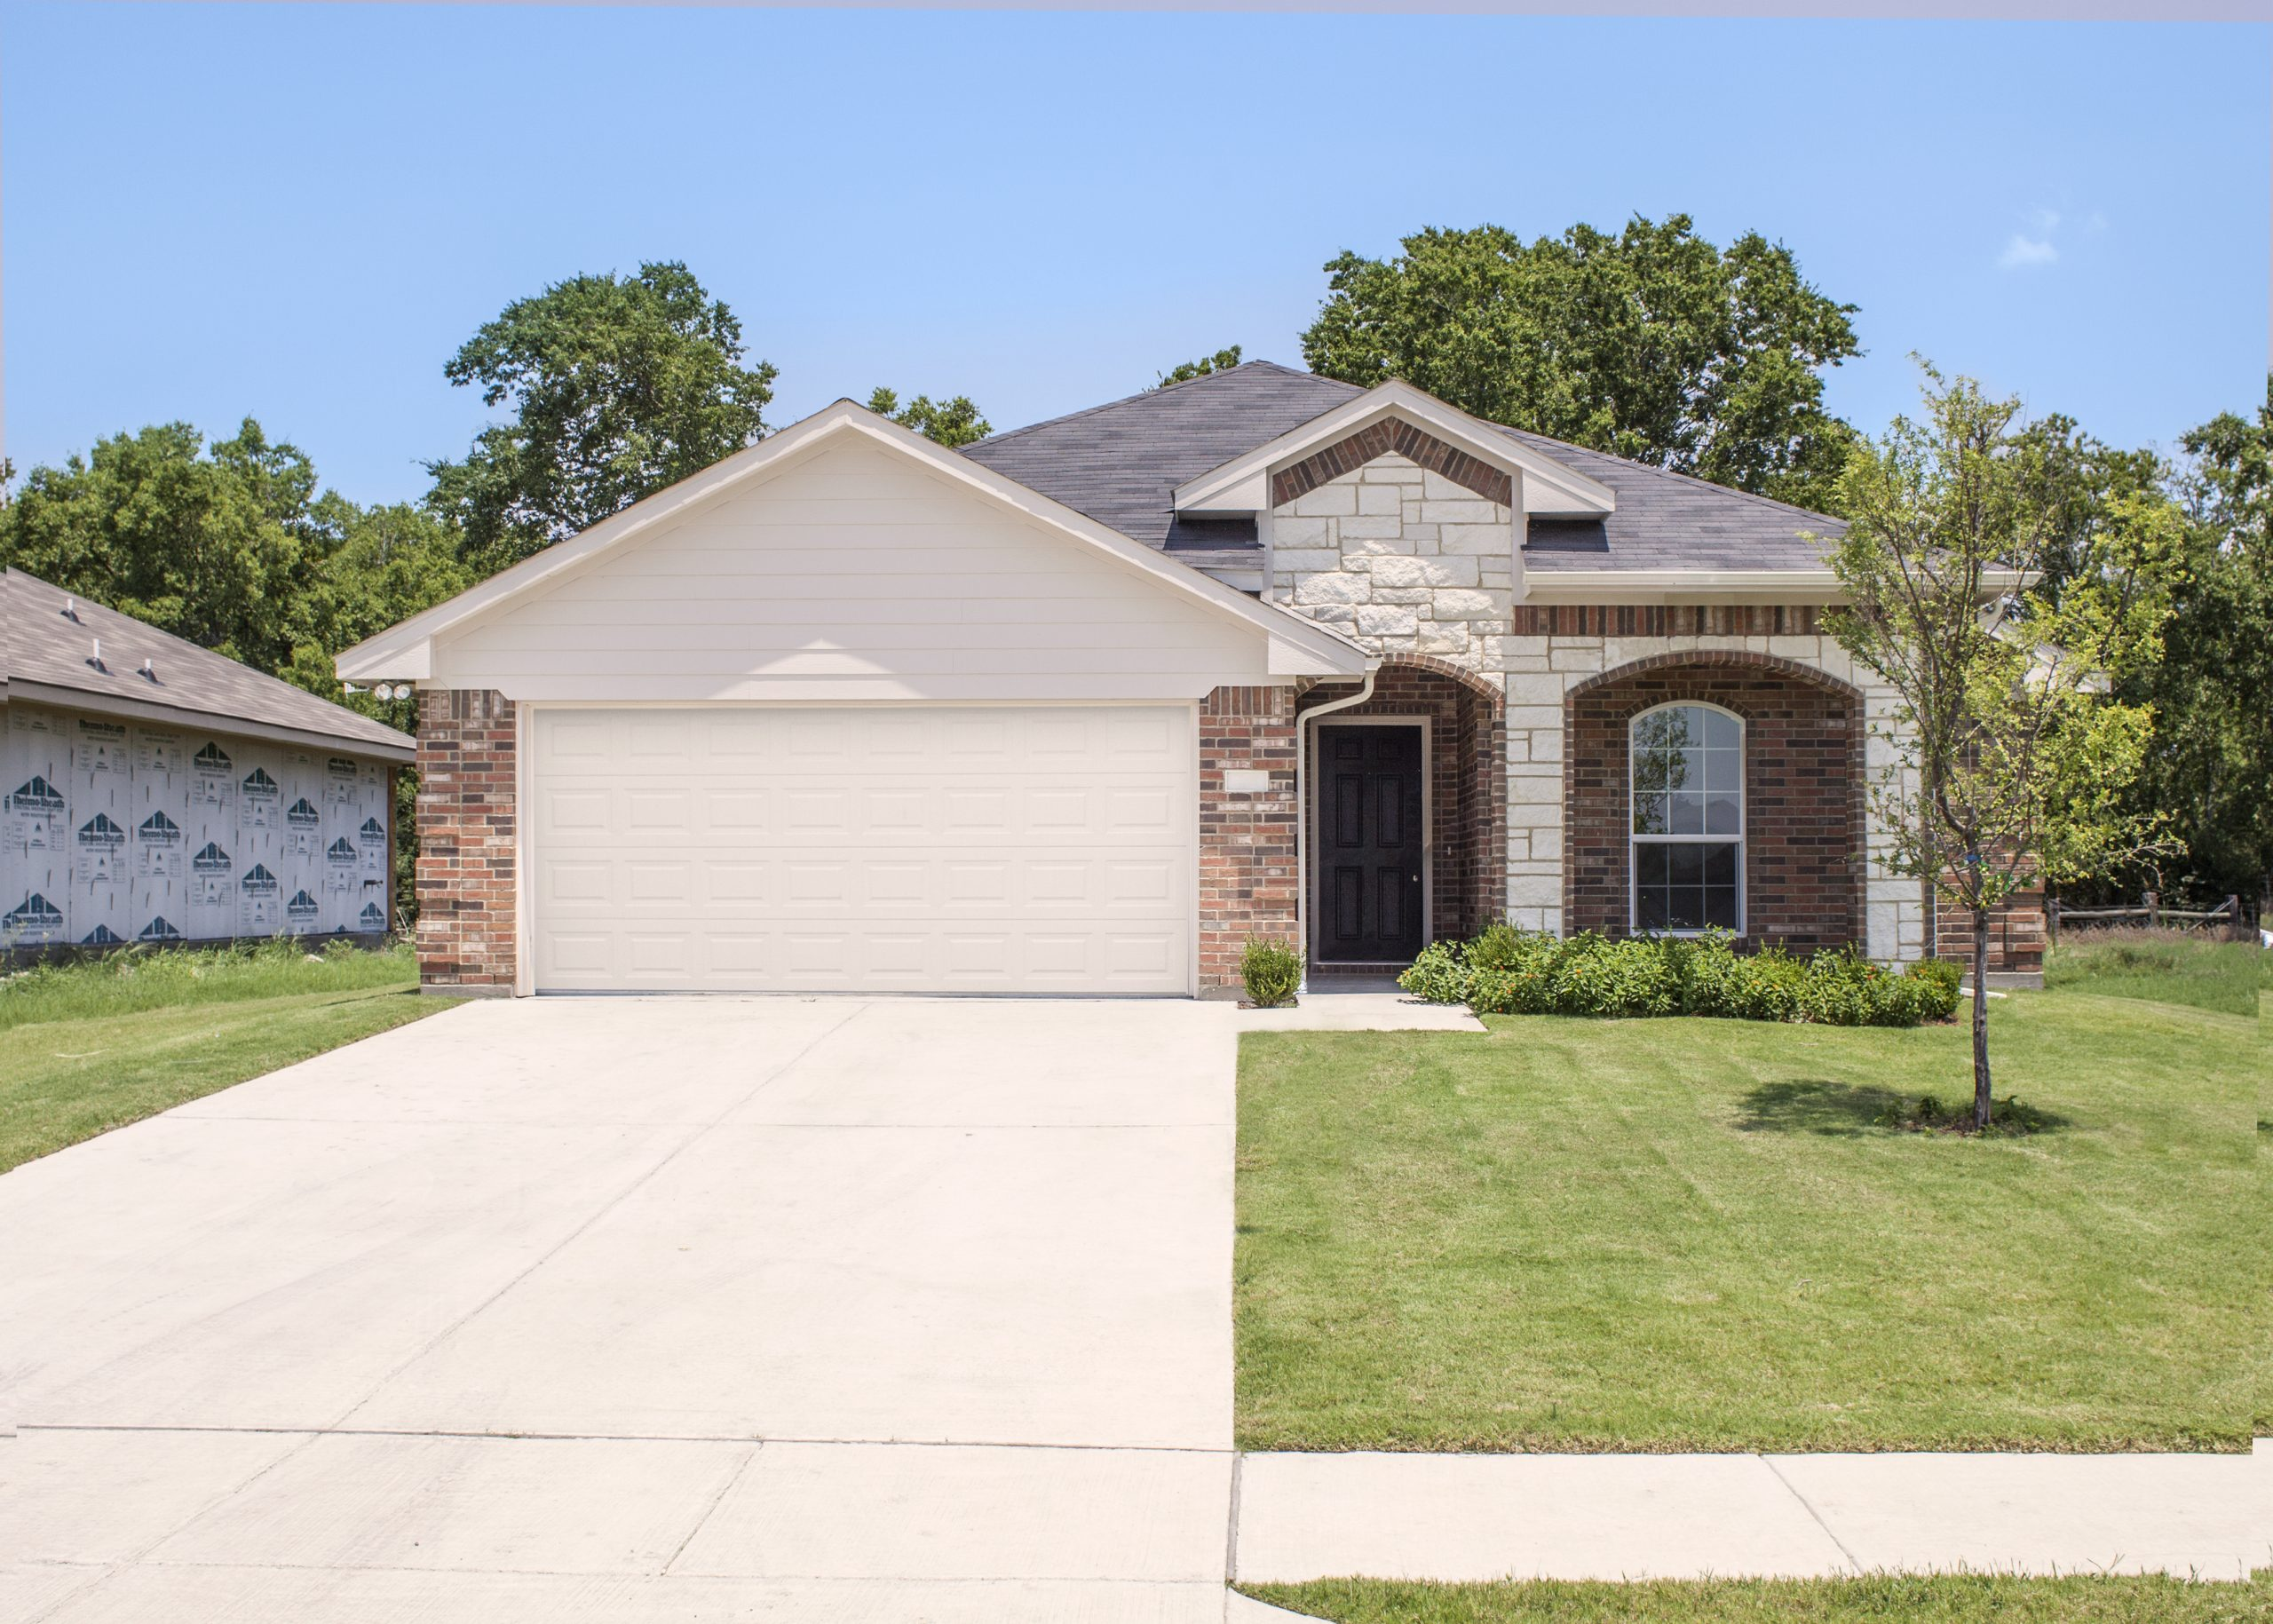 914 Road 5102 | New Home in the Houston, Texas Area